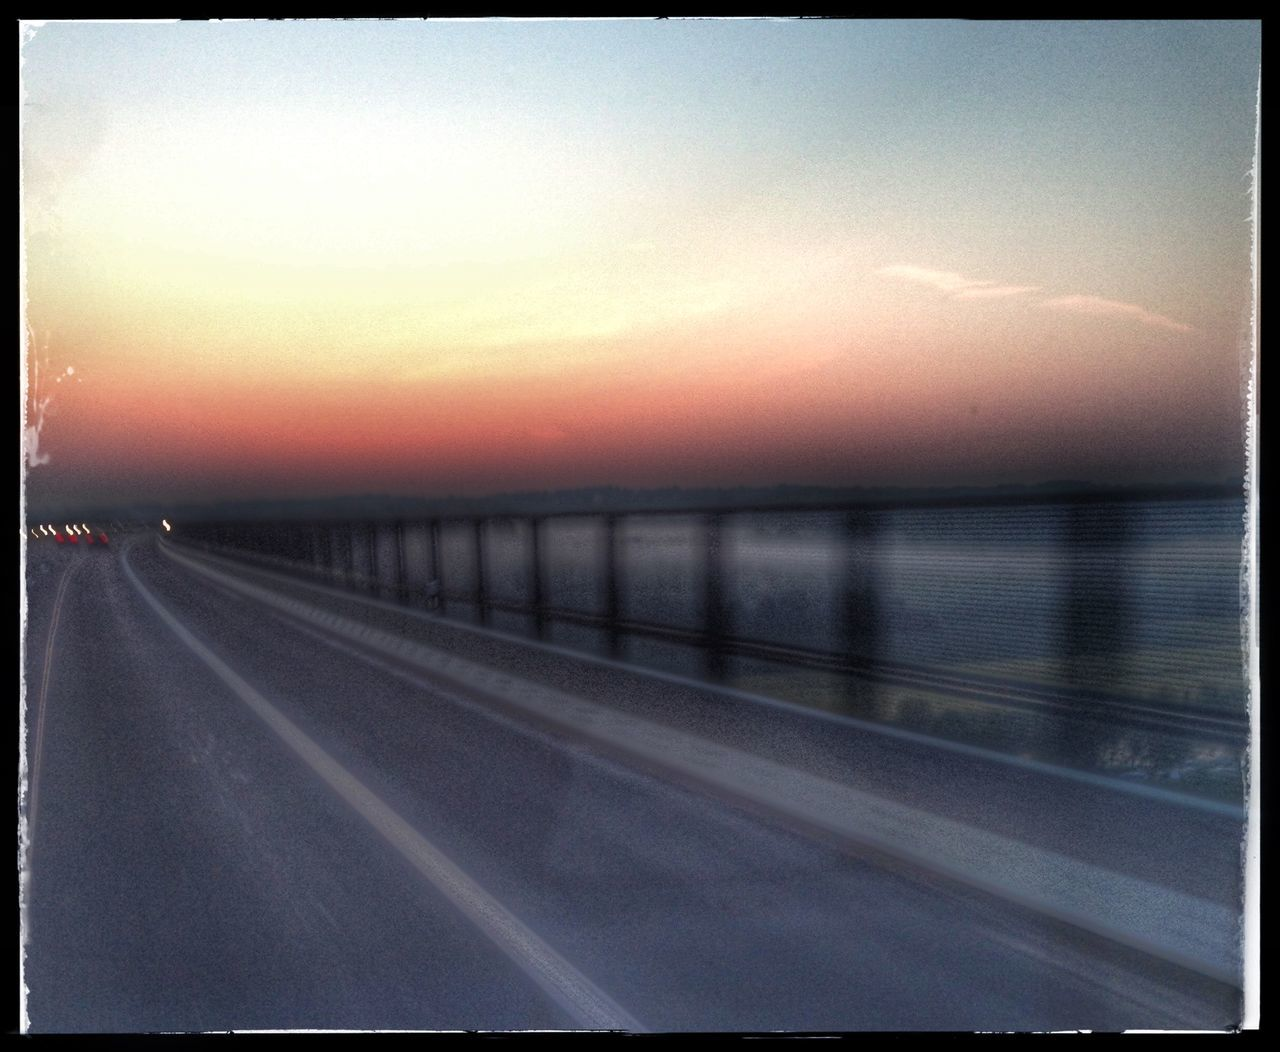 sunset, road, transportation, sky, sun, no people, scenics, nature, outdoors, tranquil scene, tranquility, sunlight, beauty in nature, sea, clear sky, water, day